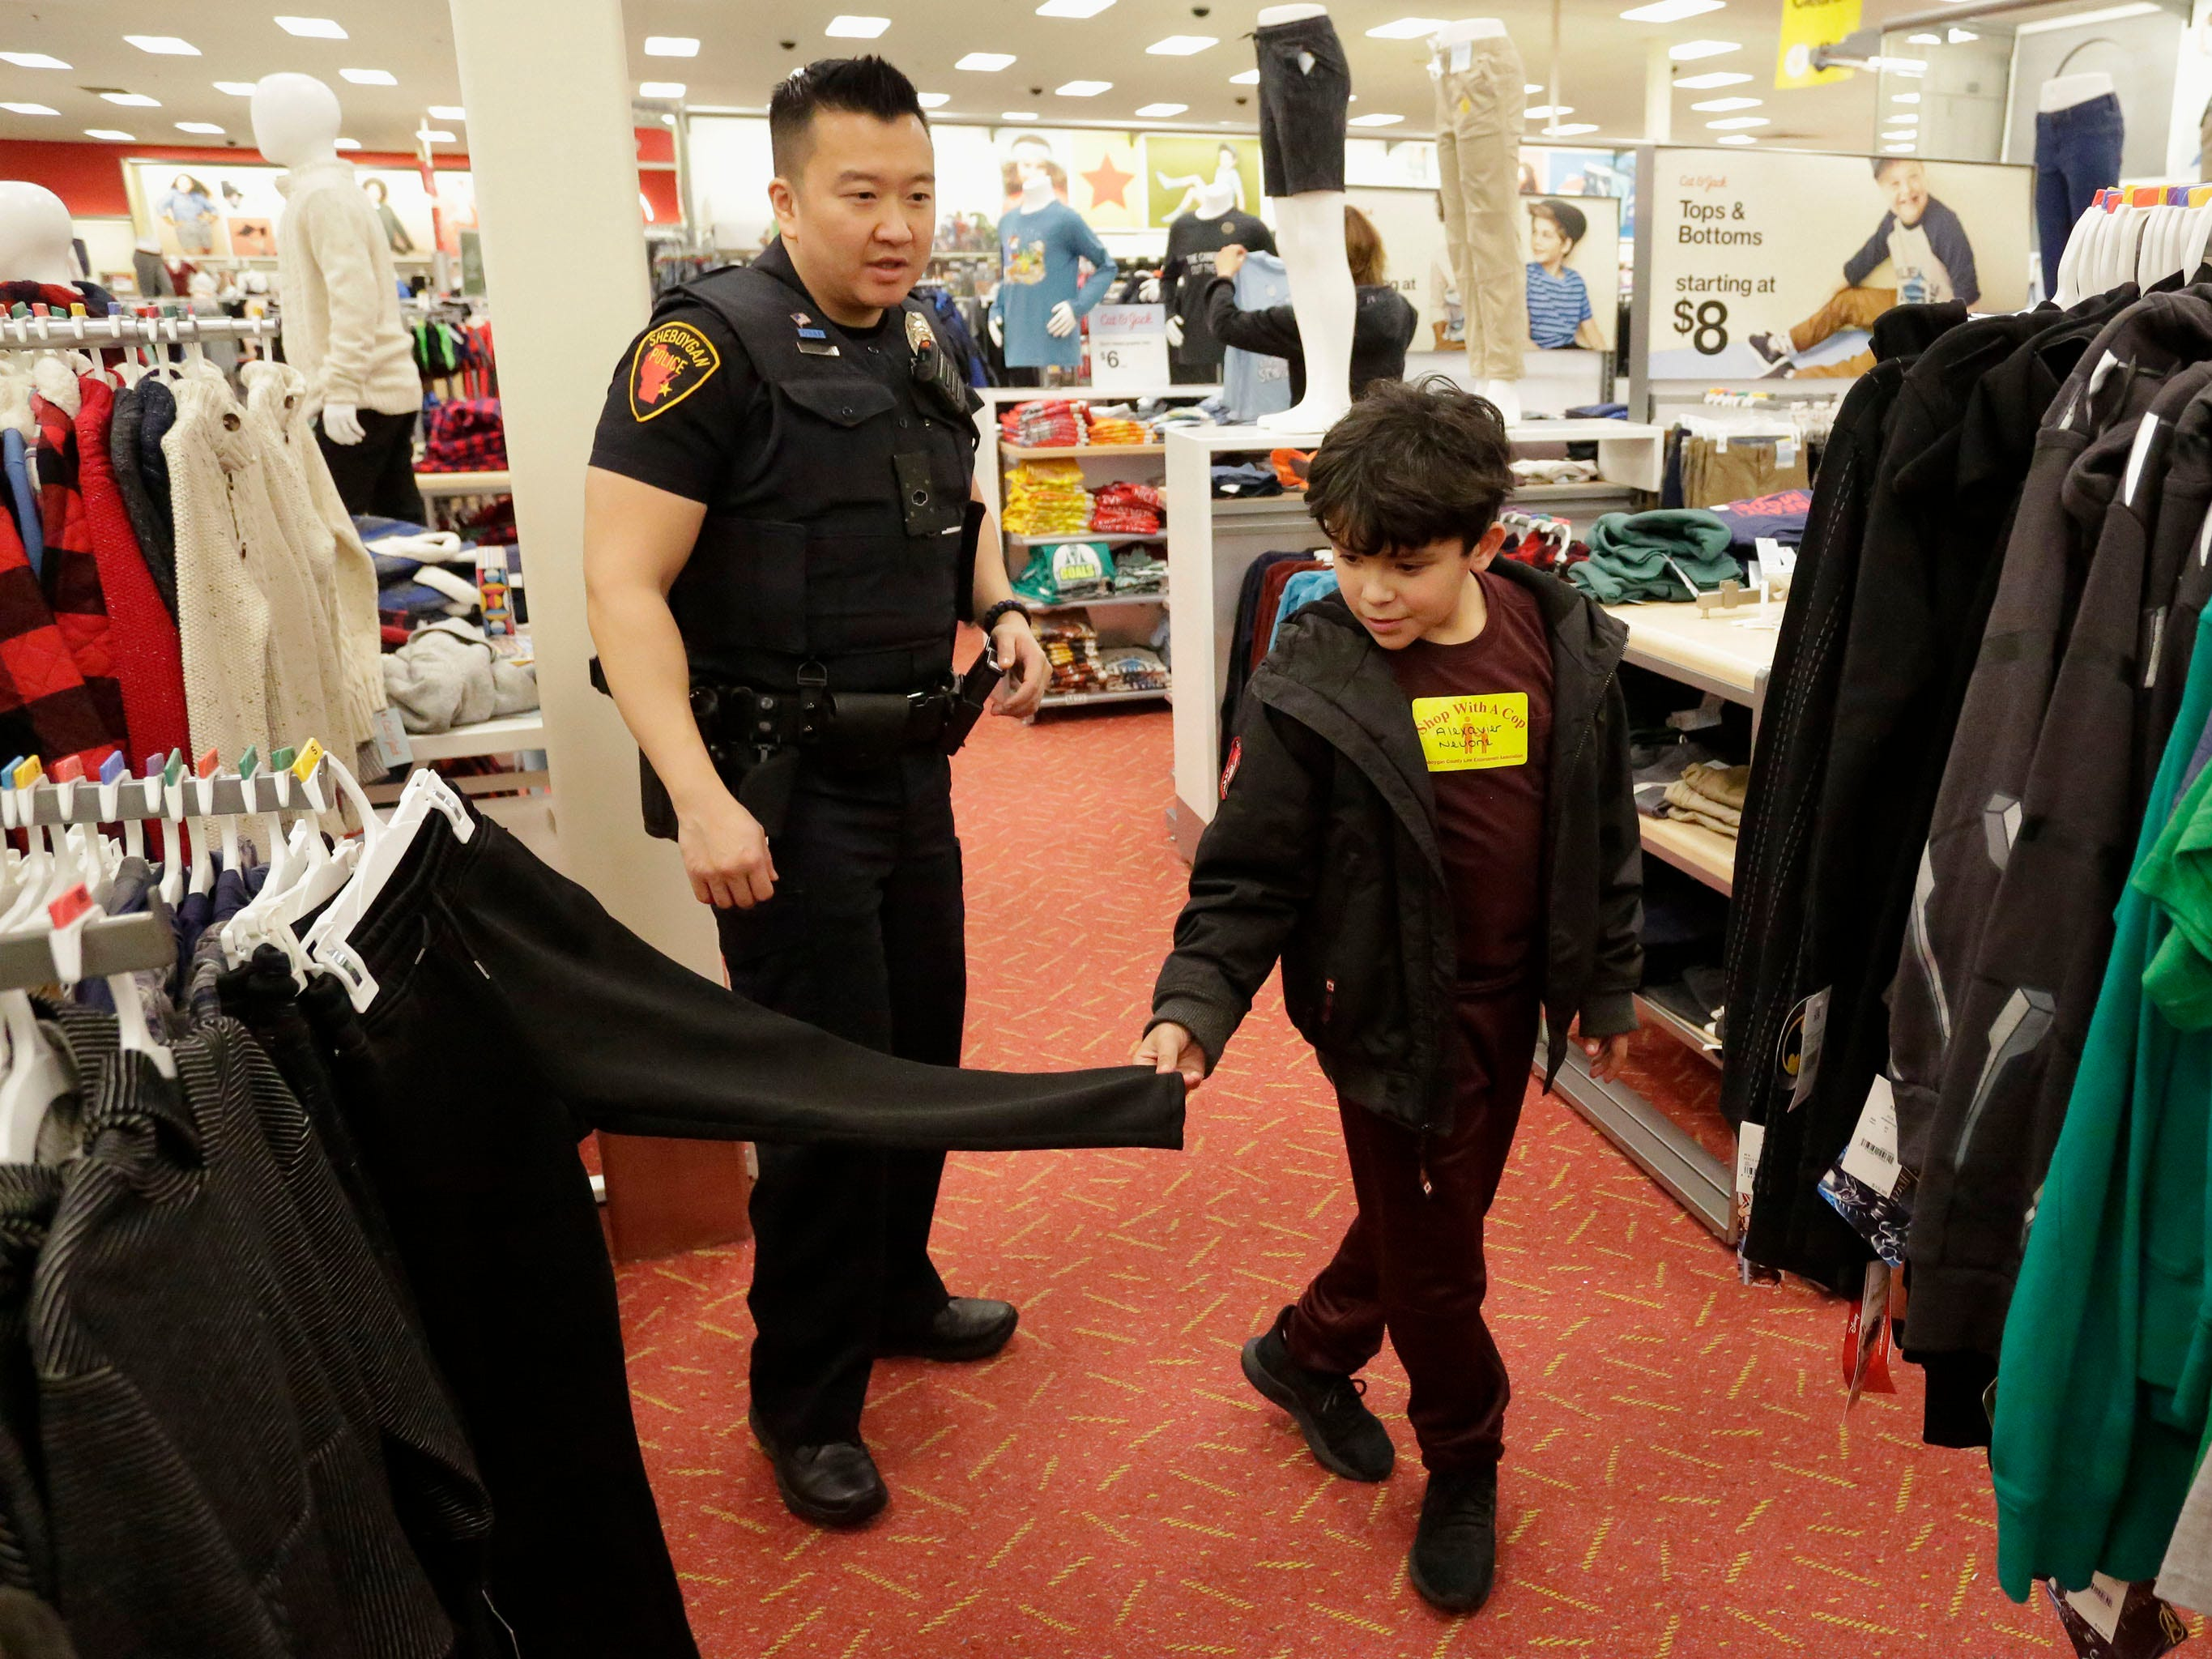 Sheboygan police officer Sung Oetzel, left, helps Alexazier Neuone, 9, of Sheboygan, Wis., pick out clothing during the 21st annual Shop with a Cop at Target, Tuesday, December 4, 2018, in Kohler, Wis. The program, in its 21st year, raises funds to give children a chance to buy holiday gifts that they otherwise might not receive.